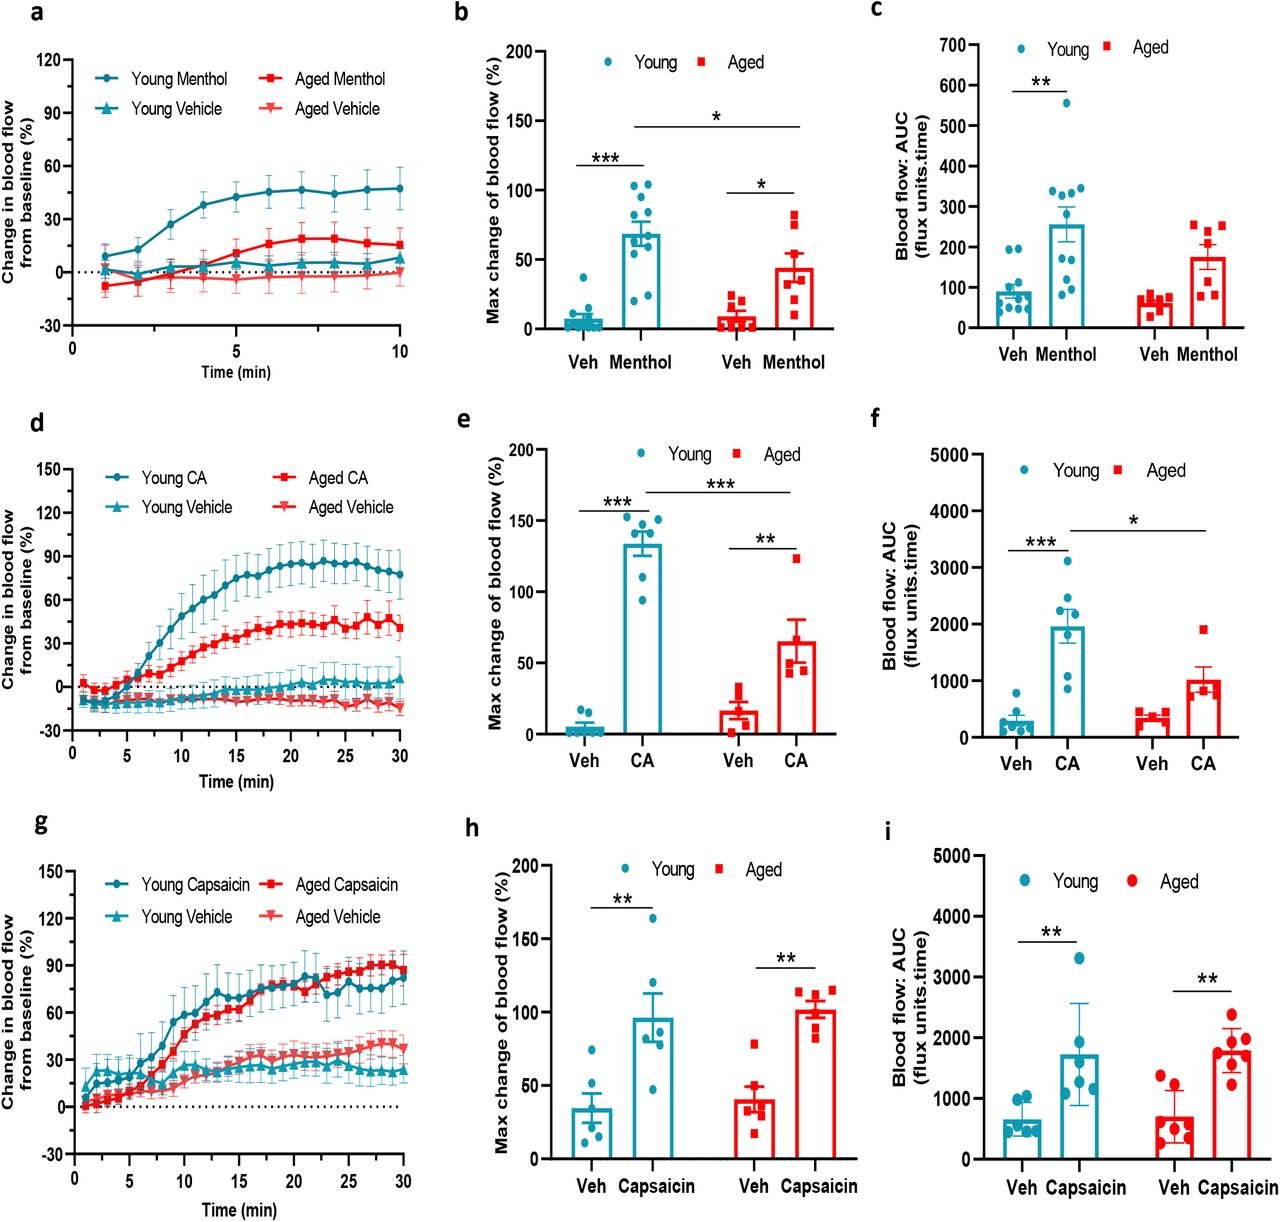 TRPA1 and TRPM8 activity deteriorates with ageing (a) Graph shows the % mean ± s.e.m. of blood flow change from baseline in response to topical application of menthol (10%) and vehicle (Veh - 10% DMSO in ethanol) in ear of young and aged mice. (b) % maximum change in ear blood flow induced by menthol application in young and aged mice. (c) AUC analysis of % blood flow increase from baseline after menthol application compared to vehicle. (d) Graph shows the % mean ± s.e.m. of blood flow change from baseline in response to topical application of cinnamaldehyde (10% CA) and vehicle (10% DMSO in ethanol) in ear of young and aged mice. (e) % maximum change in ear blood flow induced by CA application in young and aged mice. (f) AUC analysis of % blood flow increase from baseline after CA application compared to vehicle. (g) Graph shows the % mean ± s.e.m. of blood flow change from baseline in response to topical application of capsaicin (10%) and vehicle (10% DMSO in ethanol) in ear of young and aged mice. (h) % maximum change in ear blood flow induced by capsaicin application in young and aged mice. (i) AUC analysis of % blood flow increase from baseline after capsaicin application compared to vehicle. All results are shown as mean ± s.e.m. *p